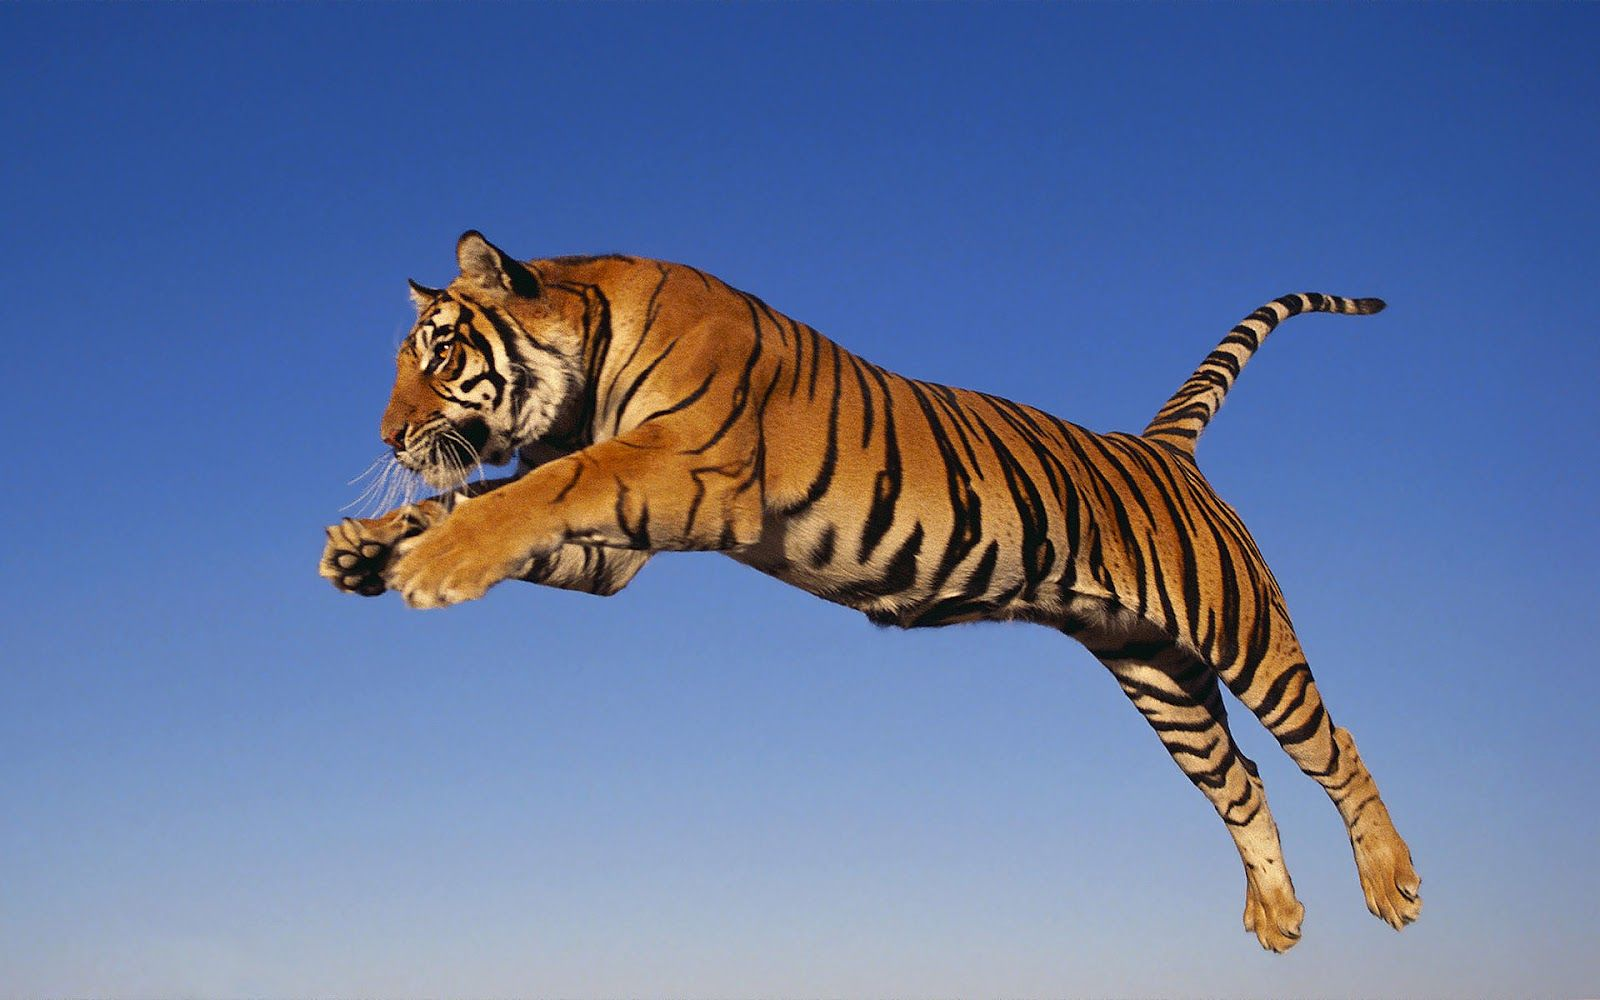 Hd Tiger Images Hd Wallpapers And Pictures Beautiful Animals